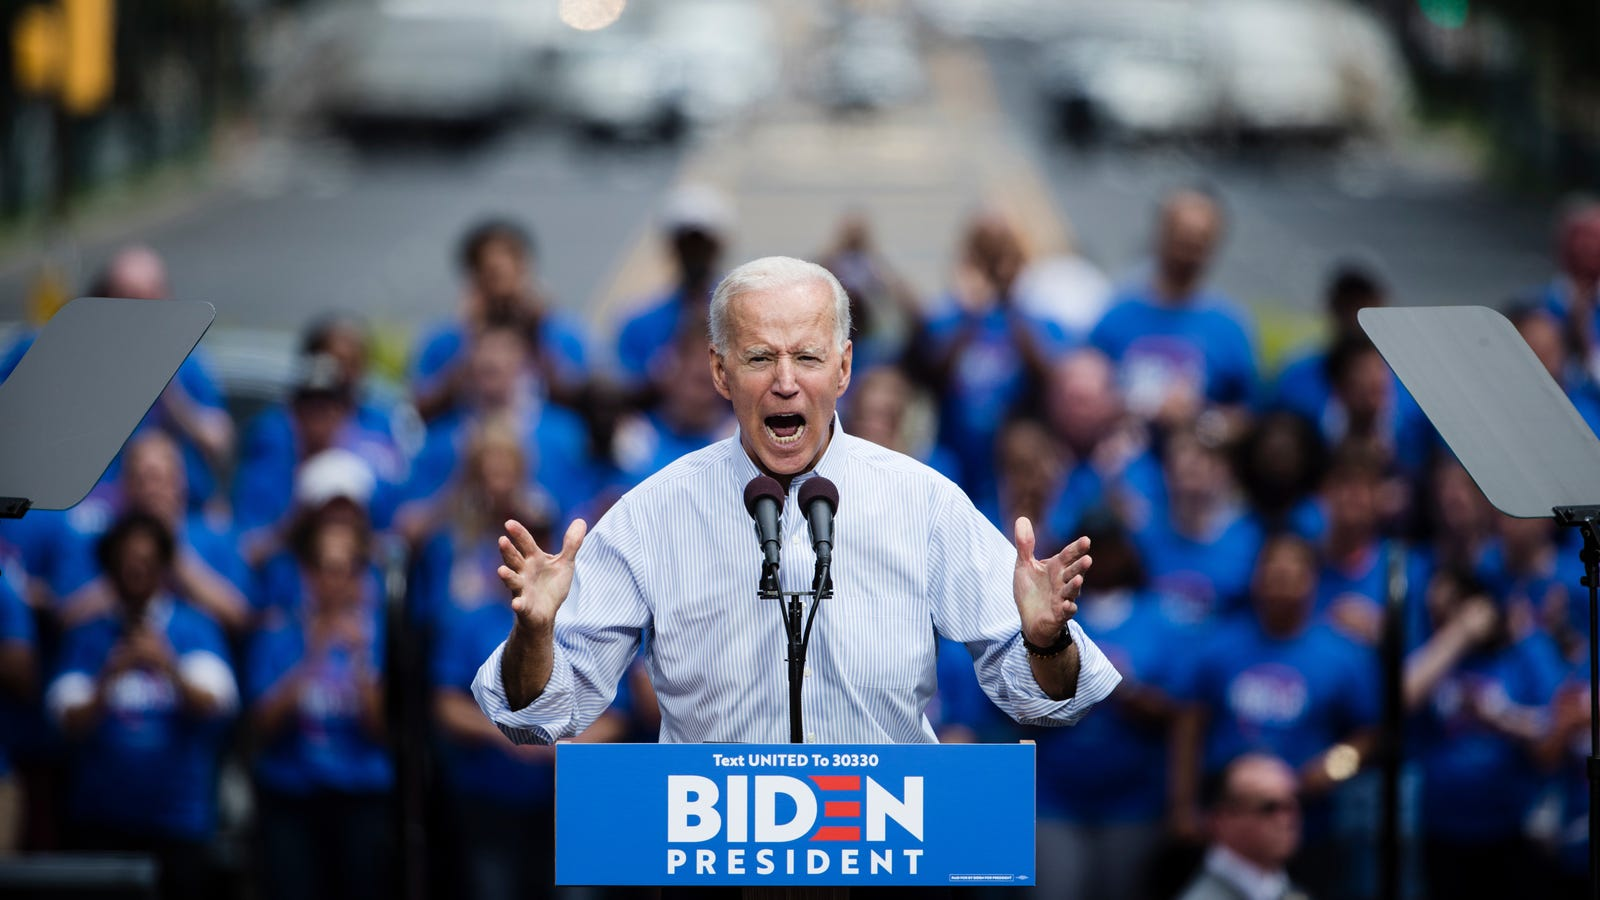 QnA VBage Joe Biden's Climate Plan Actually Has Teeth